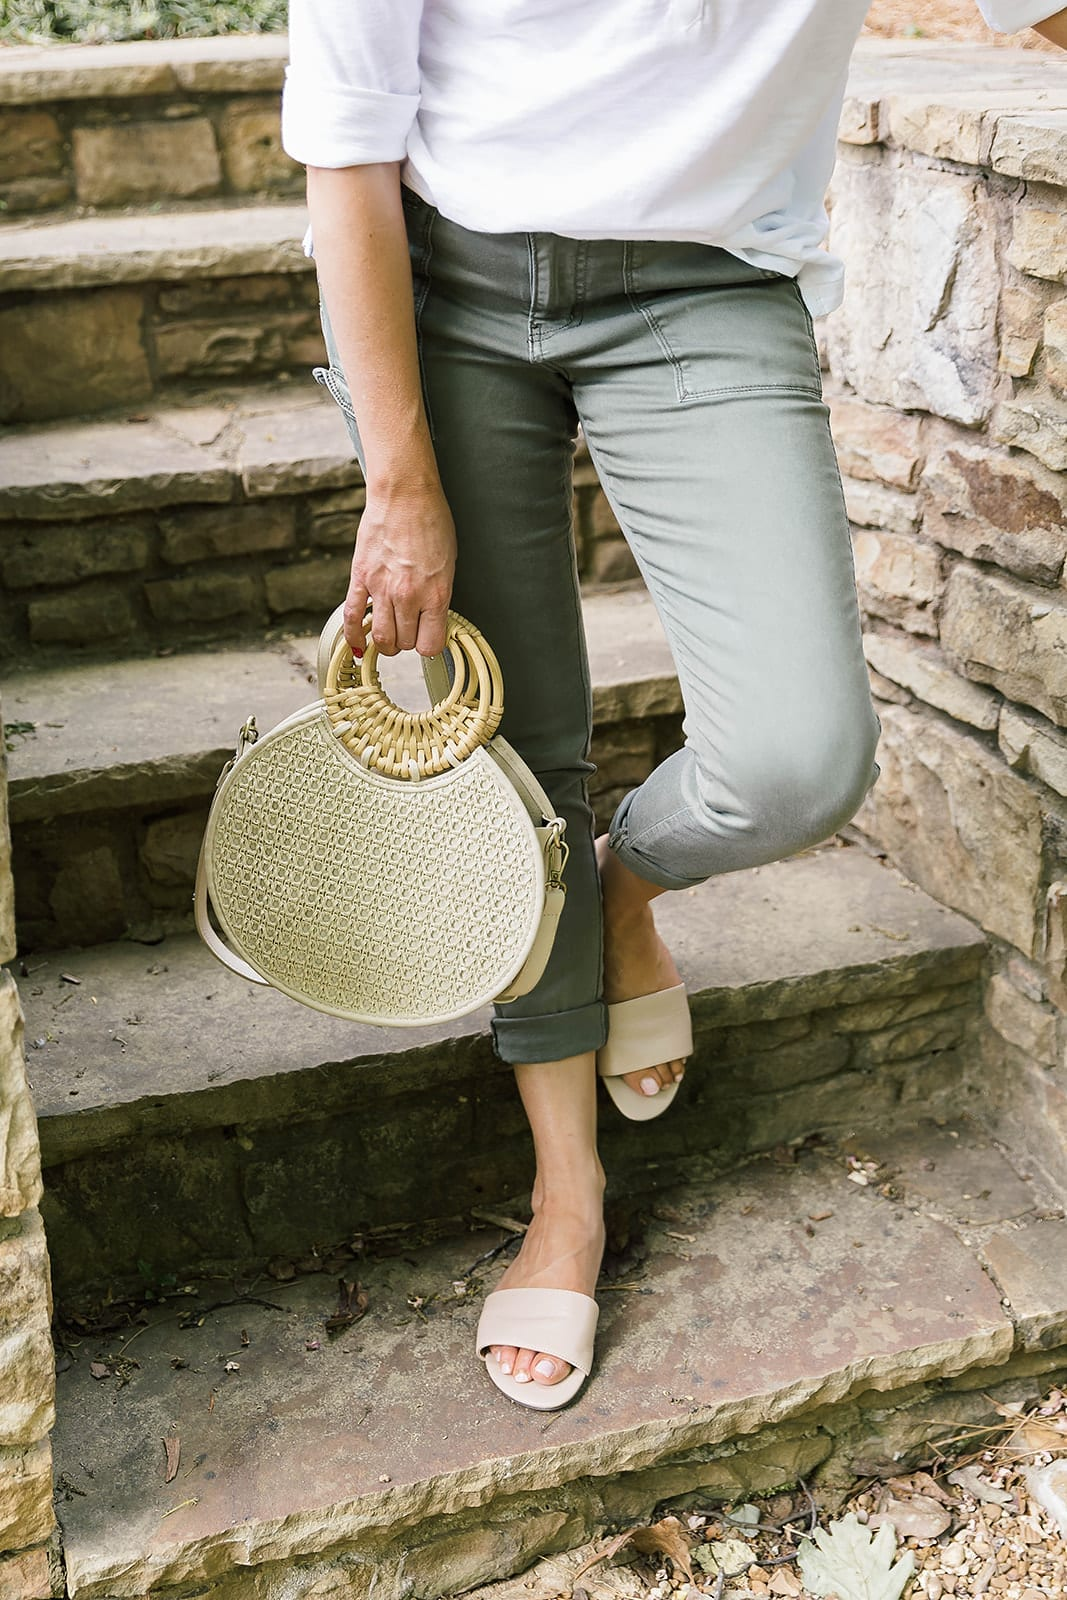 Summer Crossbody Bag and easy to wear casual outfit for women.